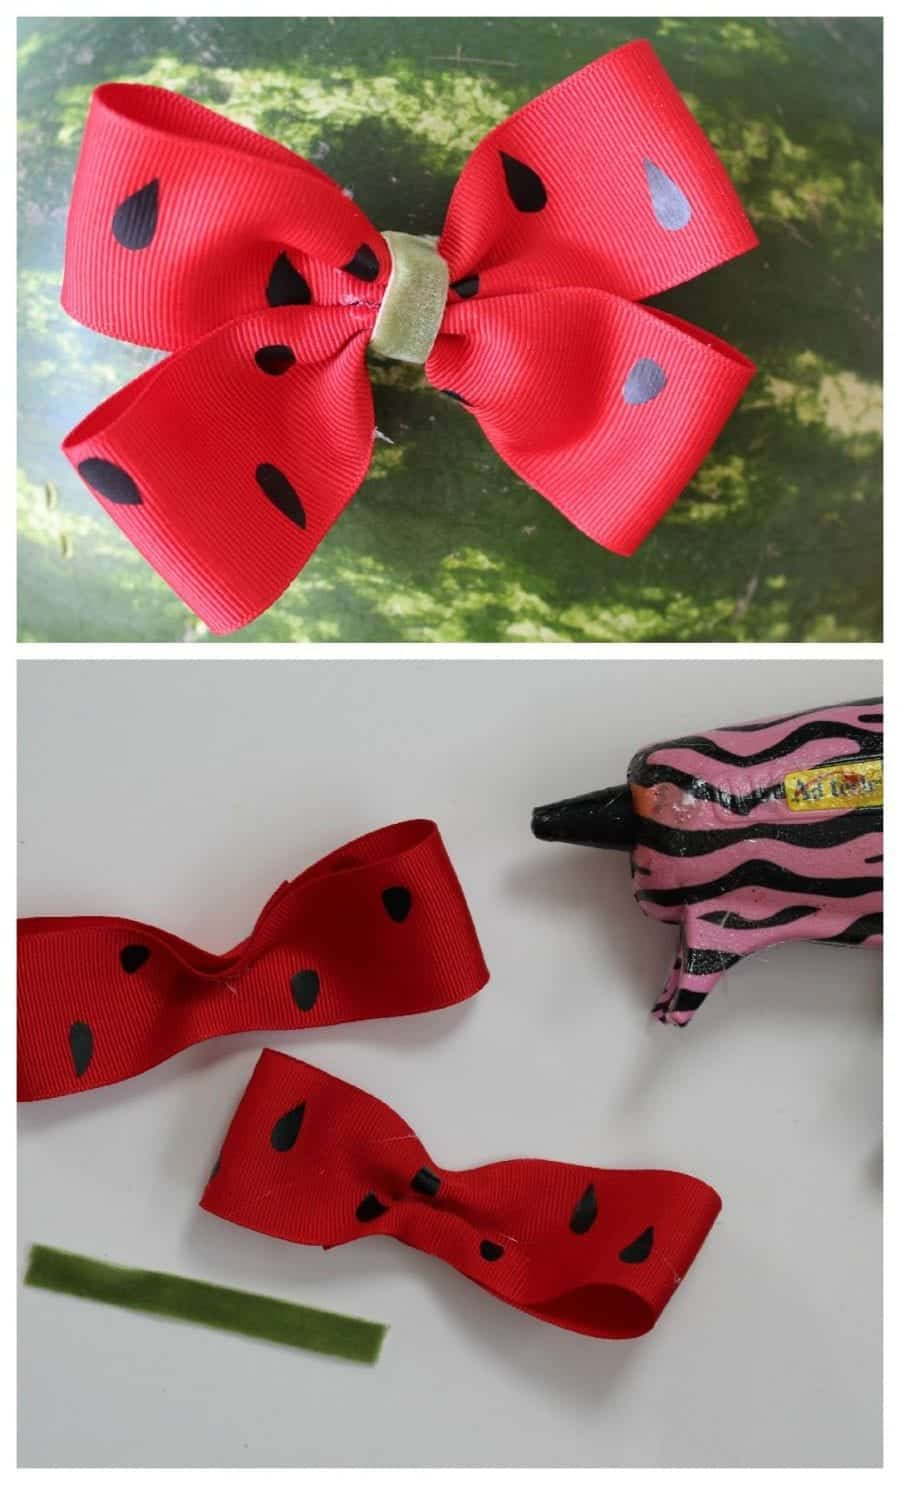 watermelon-headband-for-girls-900x1485